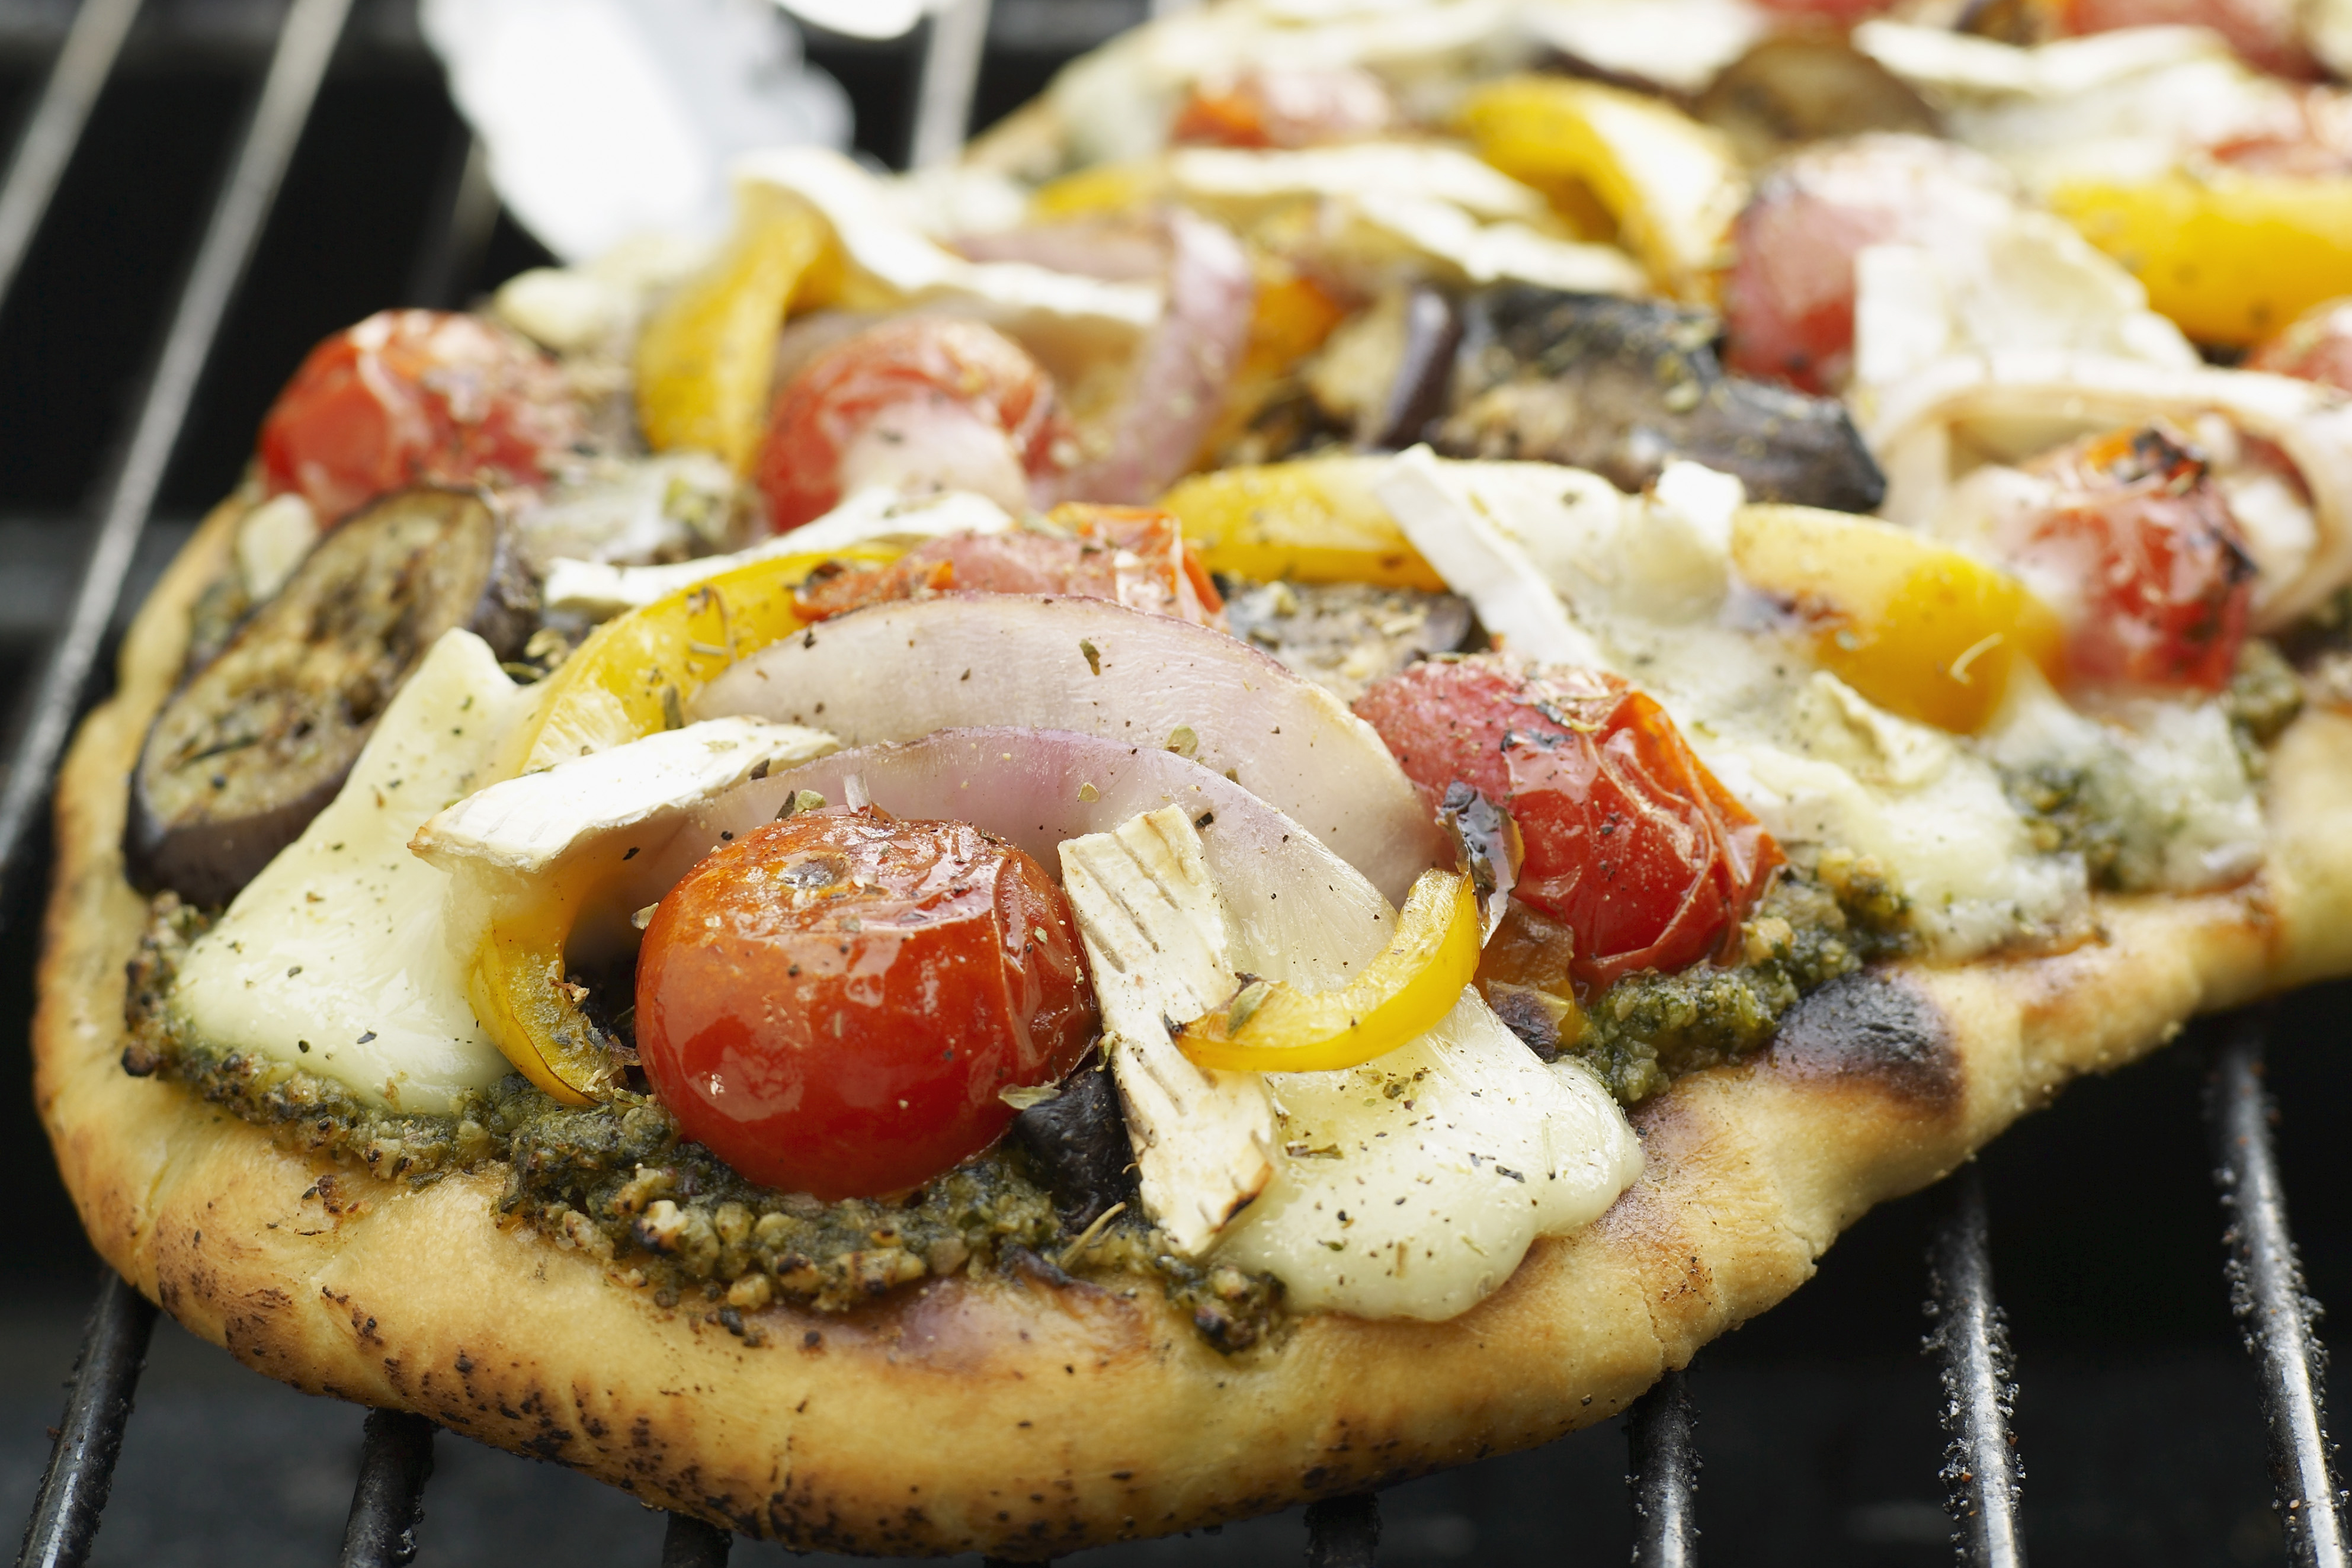 A pesto and vegetable pizza on the grill